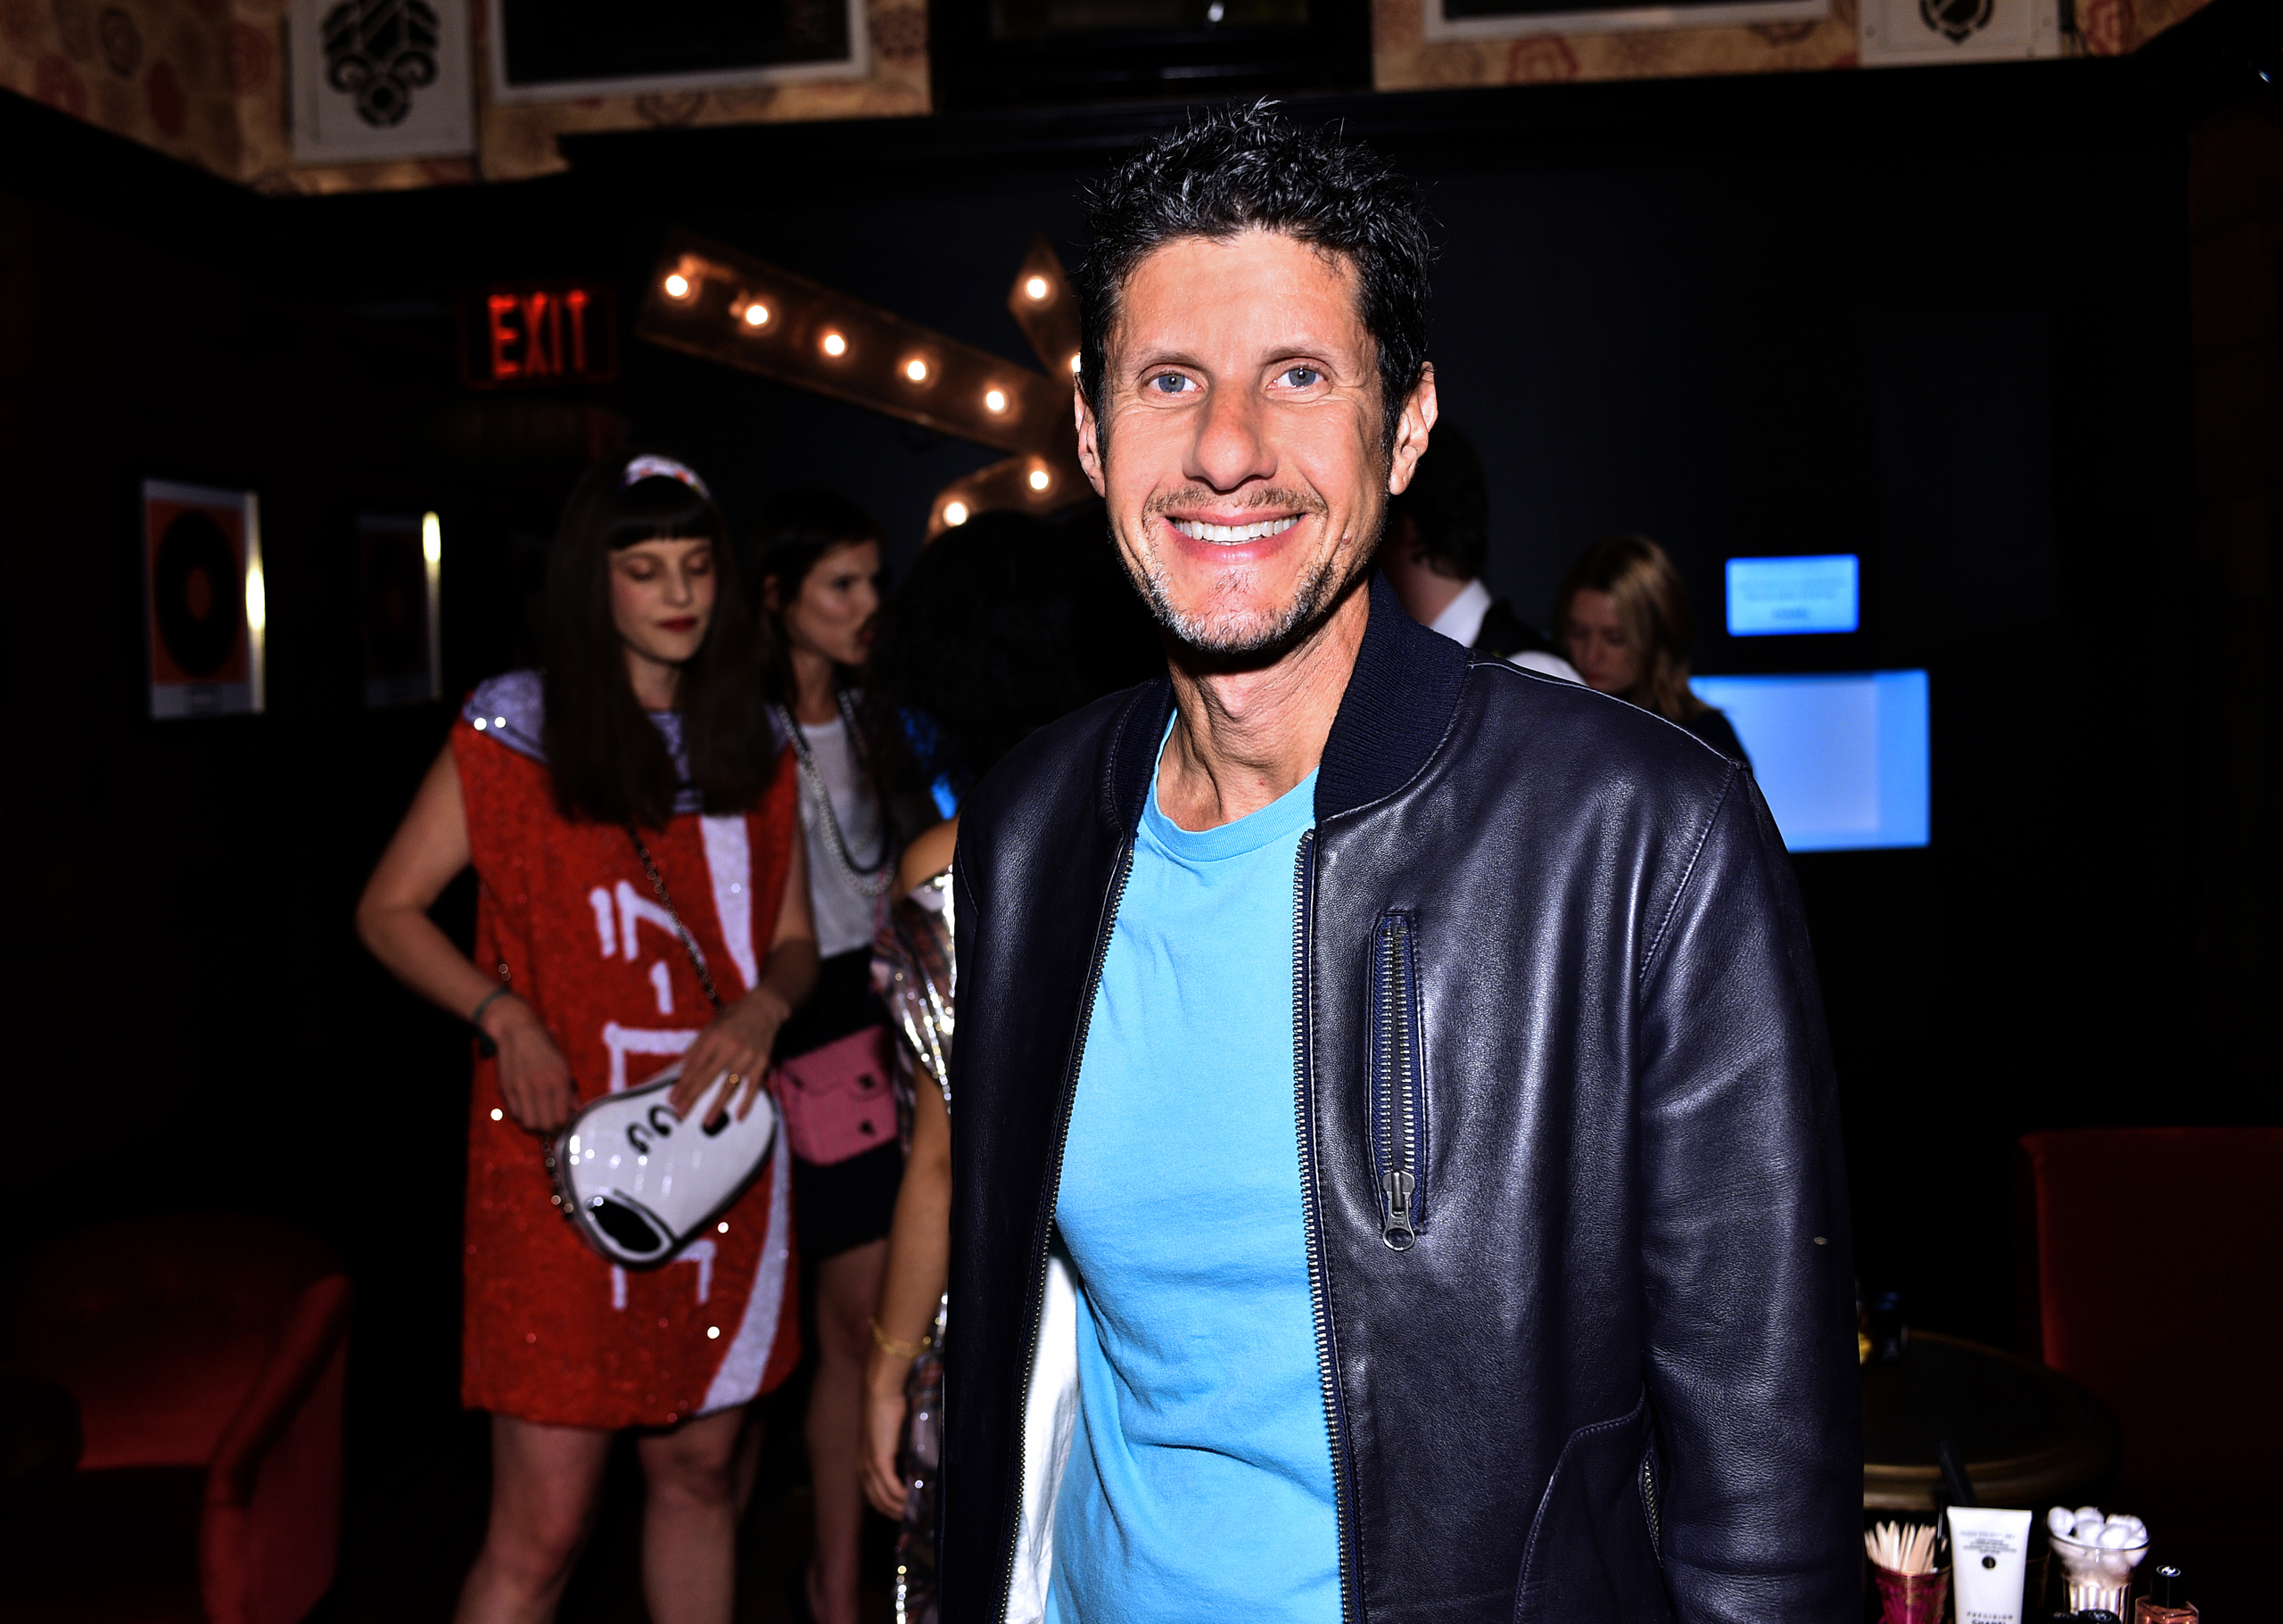 HOLLYWOOD, CA - FEBRUARY 25: Rapper Mike D attends the I Love Coco Backstage Beauty Lounge at Chateau Marmont's Bar Marmont on February 25, 2016 in Hollywood, California.  (Photo by Stefanie Keenan/WireImage)